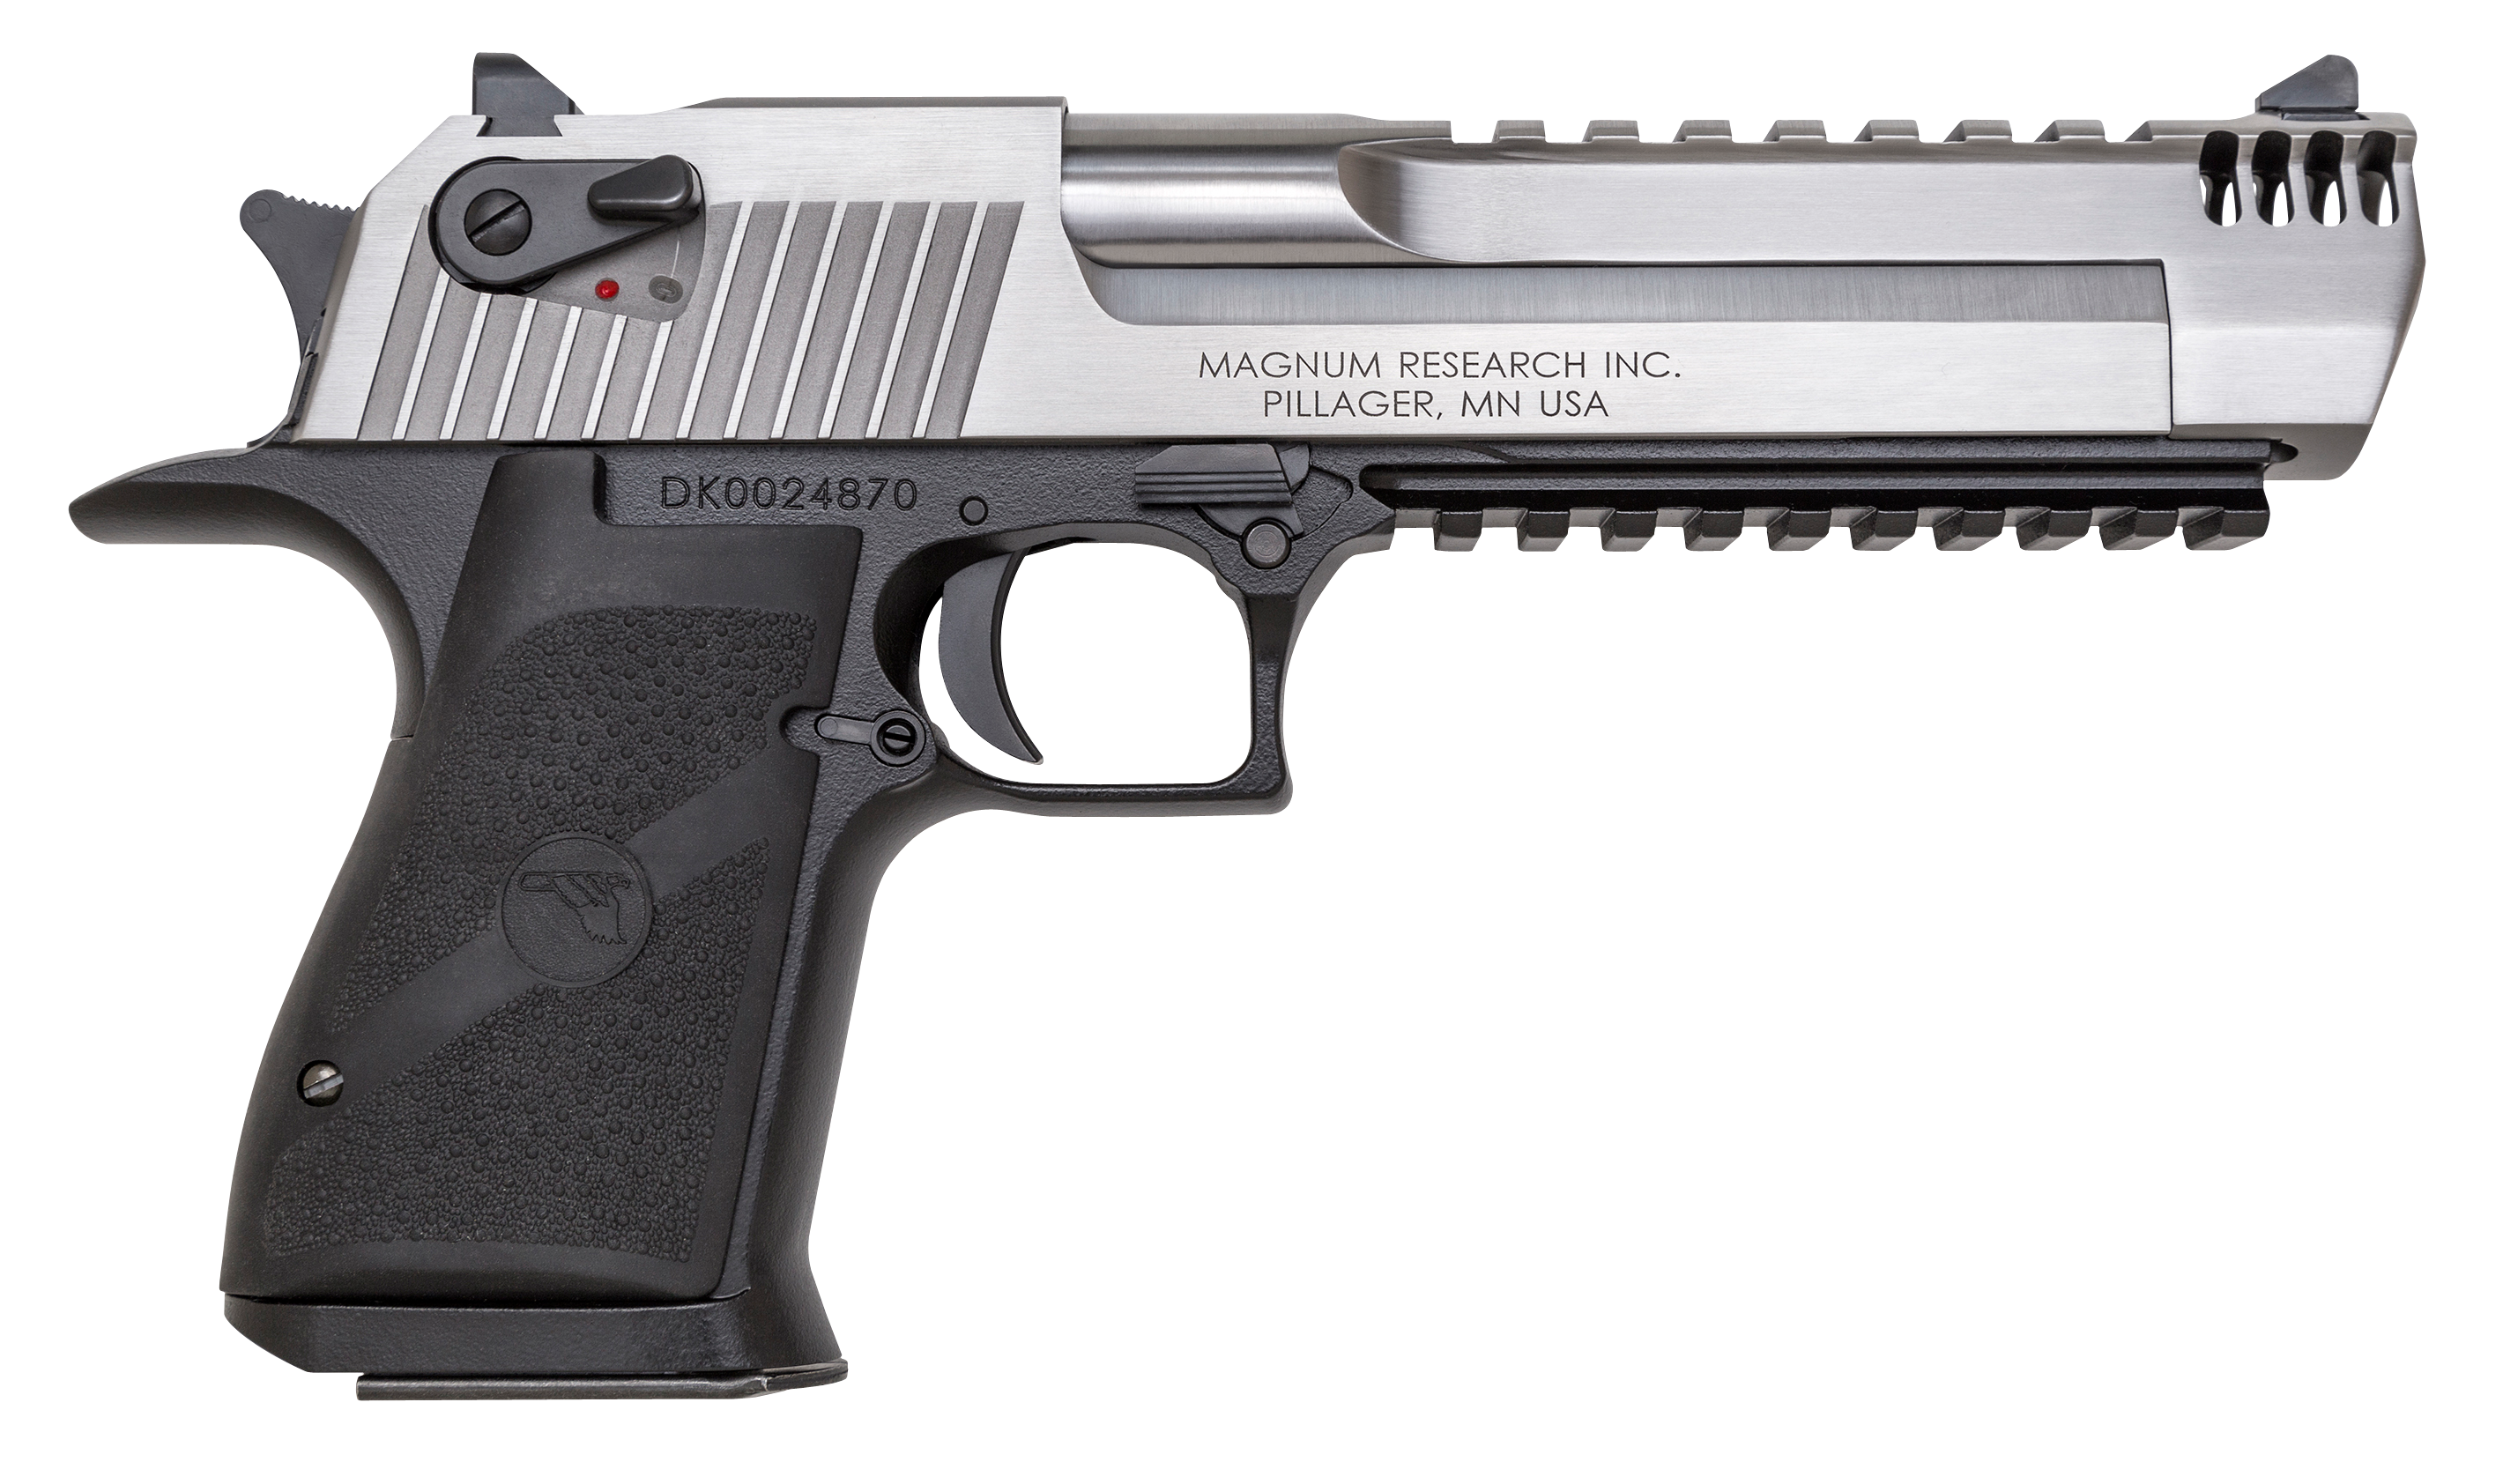 Desert eagle png. Magnum research de asimb